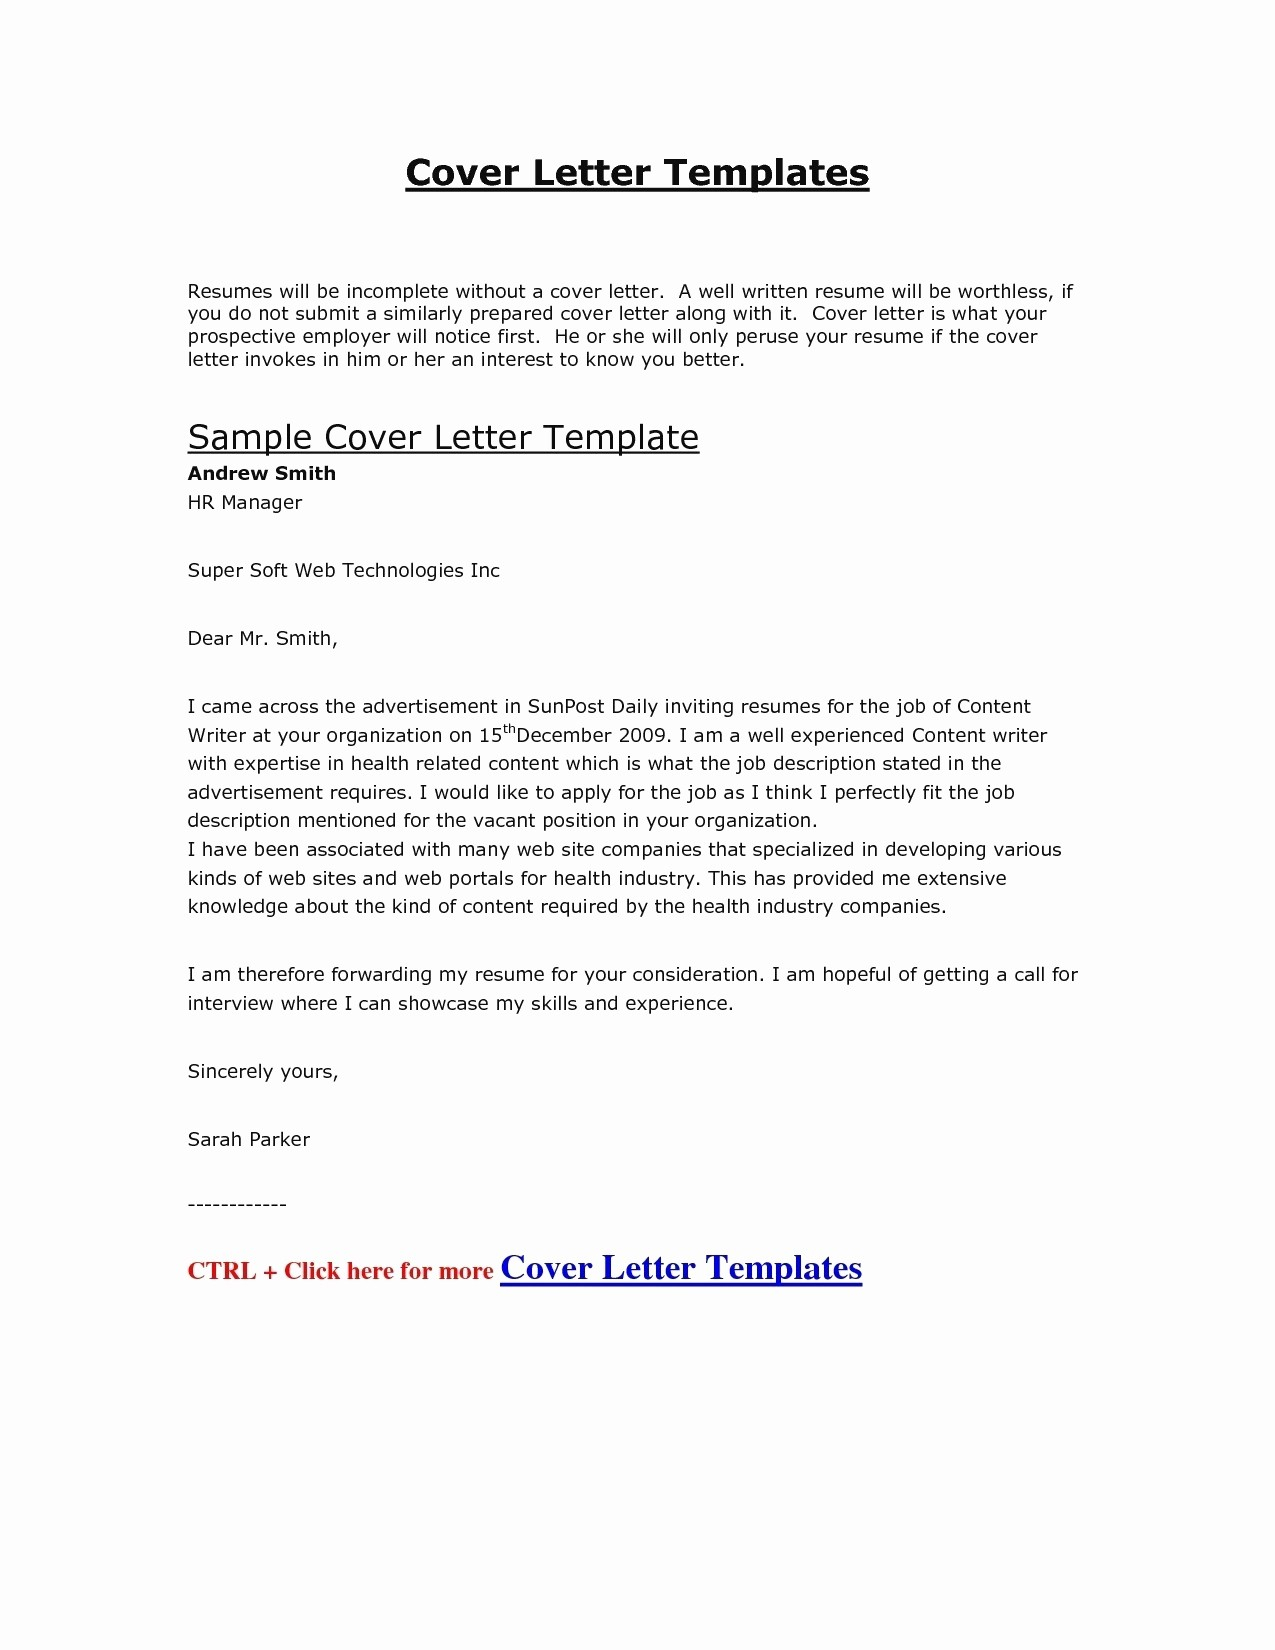 Sample Cover Letter Template - Job Application Letter format Template Copy Cover Letter Template Hr